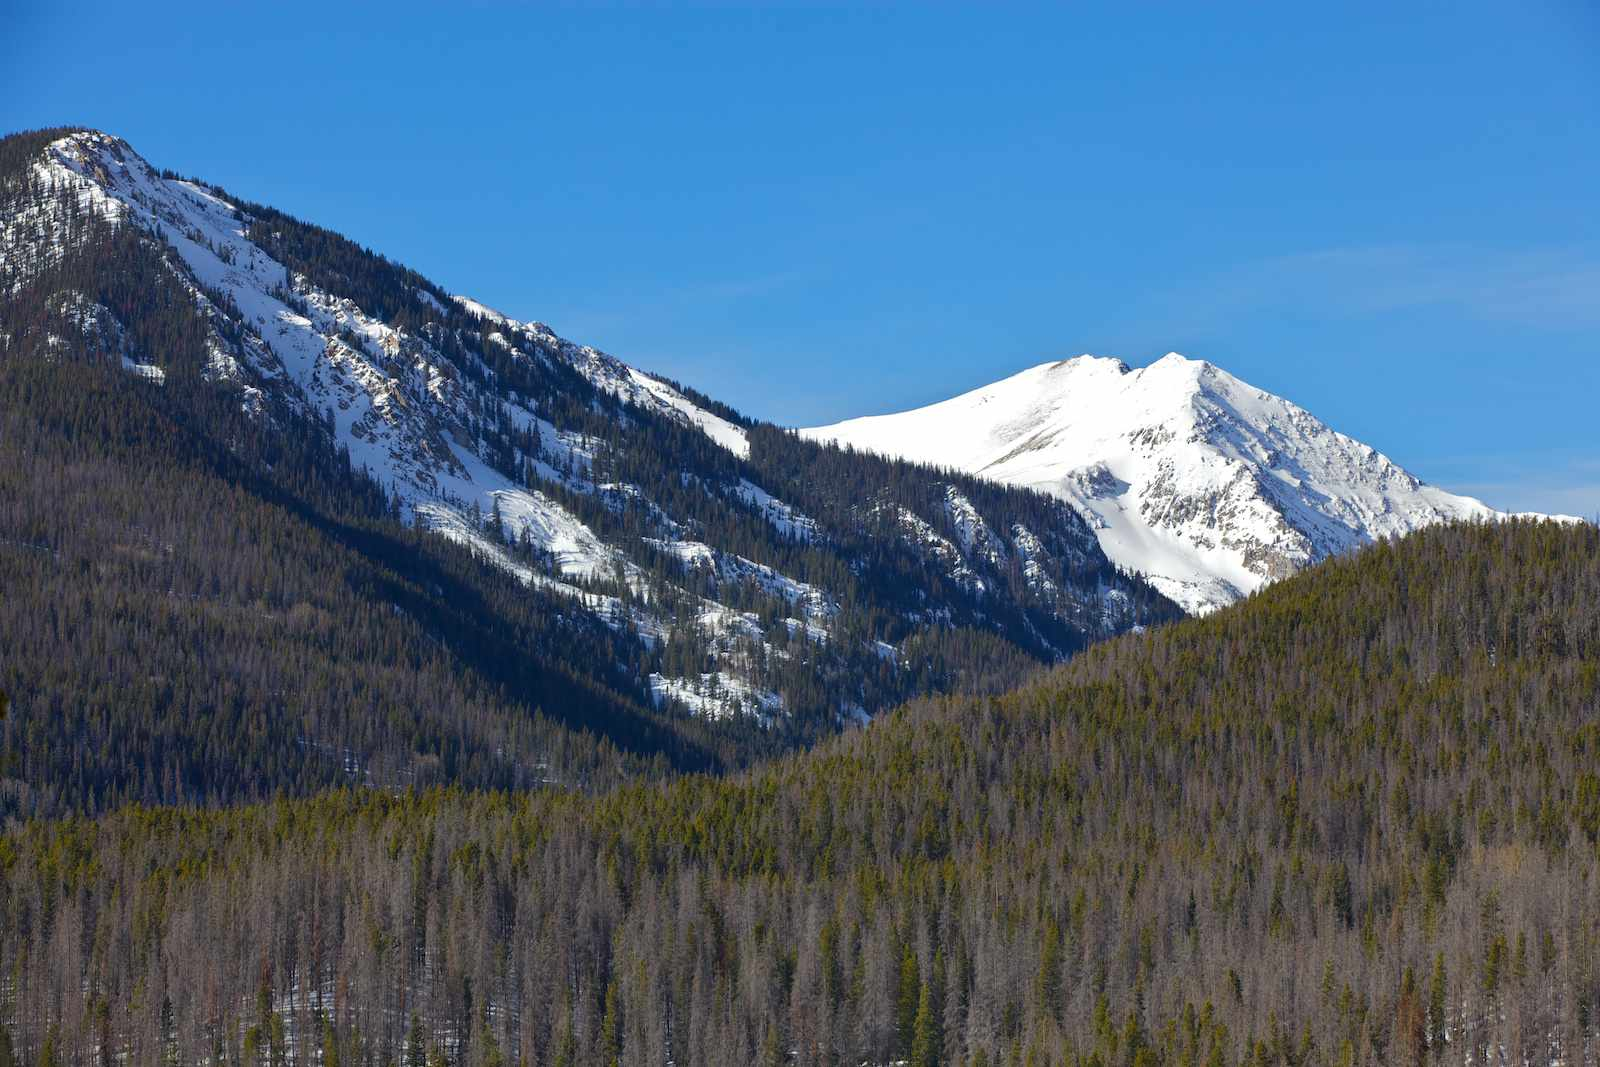 damage to pine trees in Rocky Mountain National Park caused by the mountain pine beetle